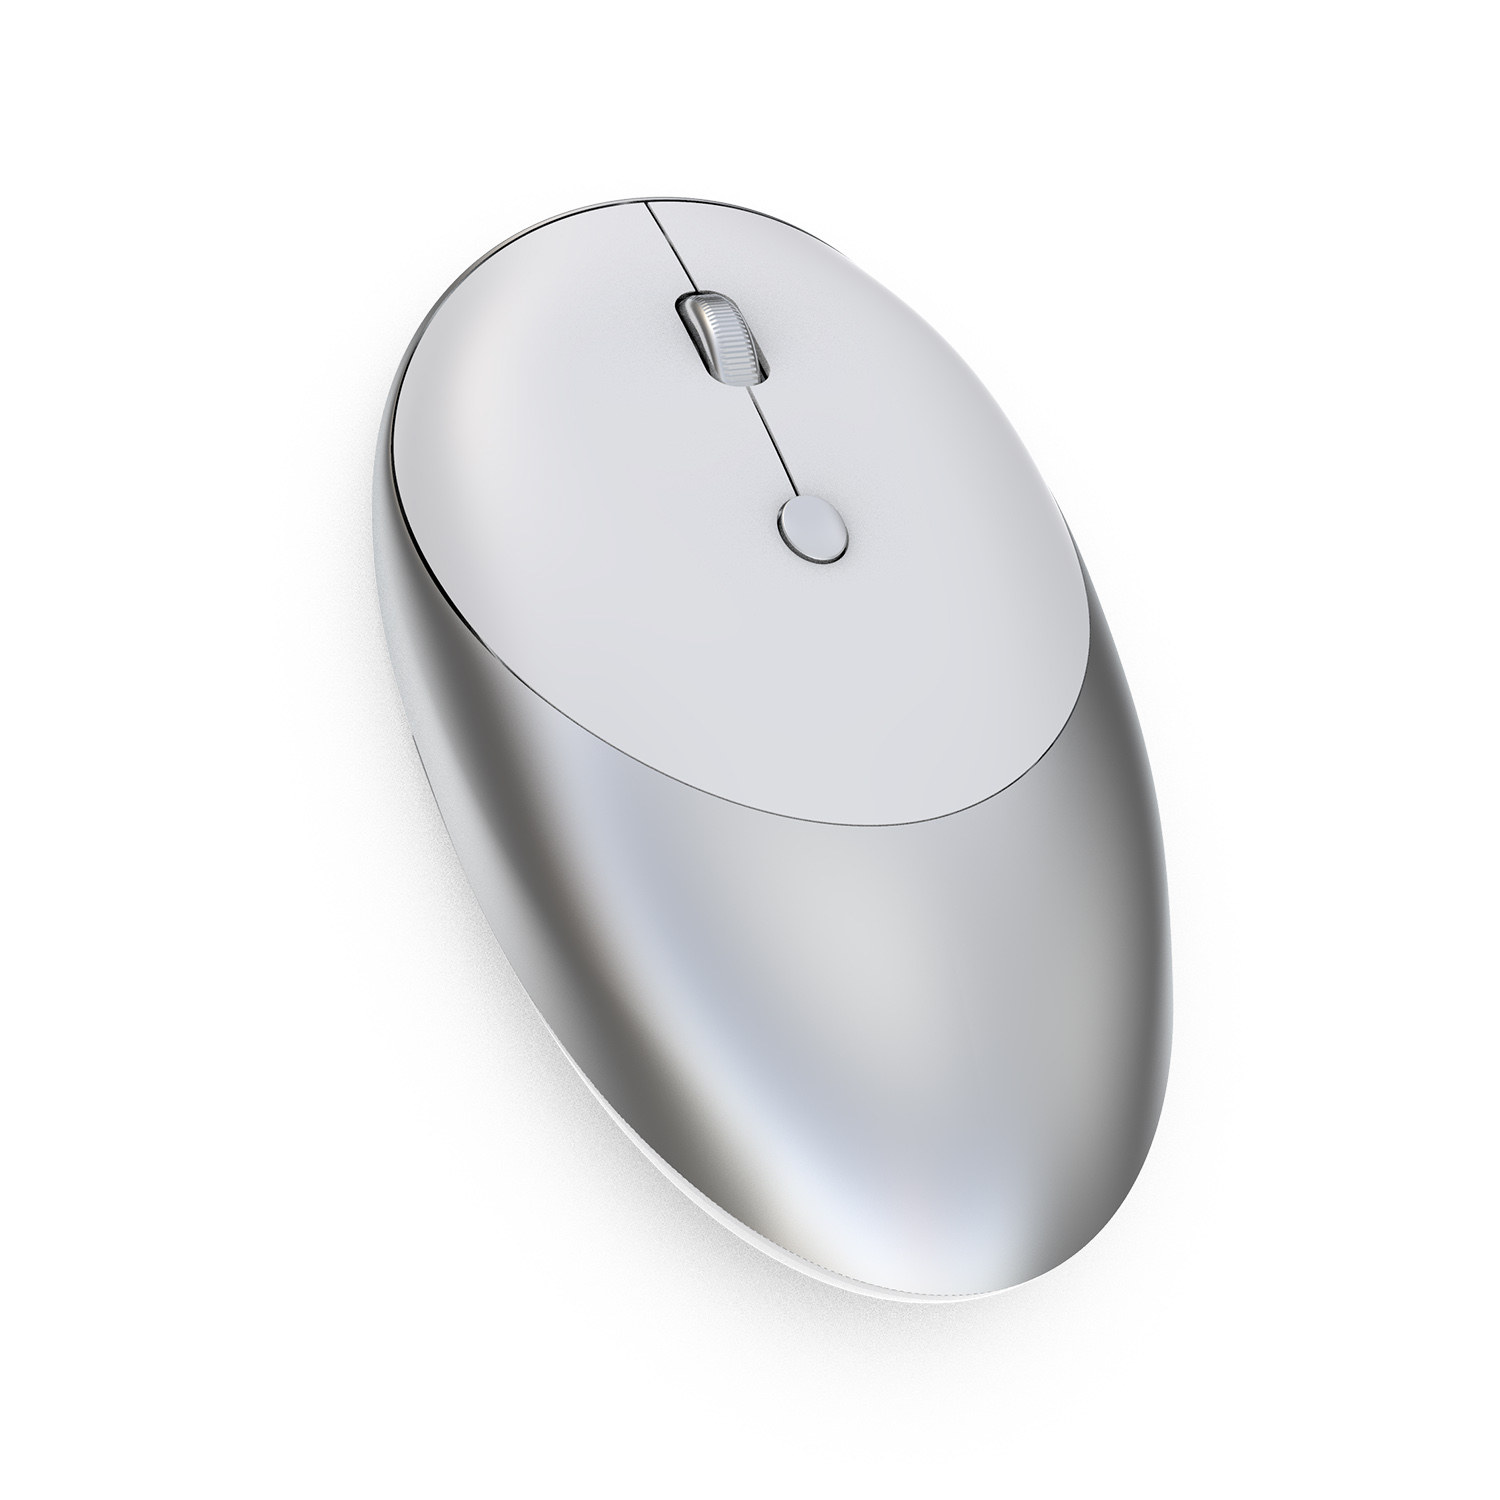 HXSJ T36 1600 DPI 2.4Ghz Wireless+bluetooth 3.0/5.0 2 Buttons Rechargeable Wireless Mouse